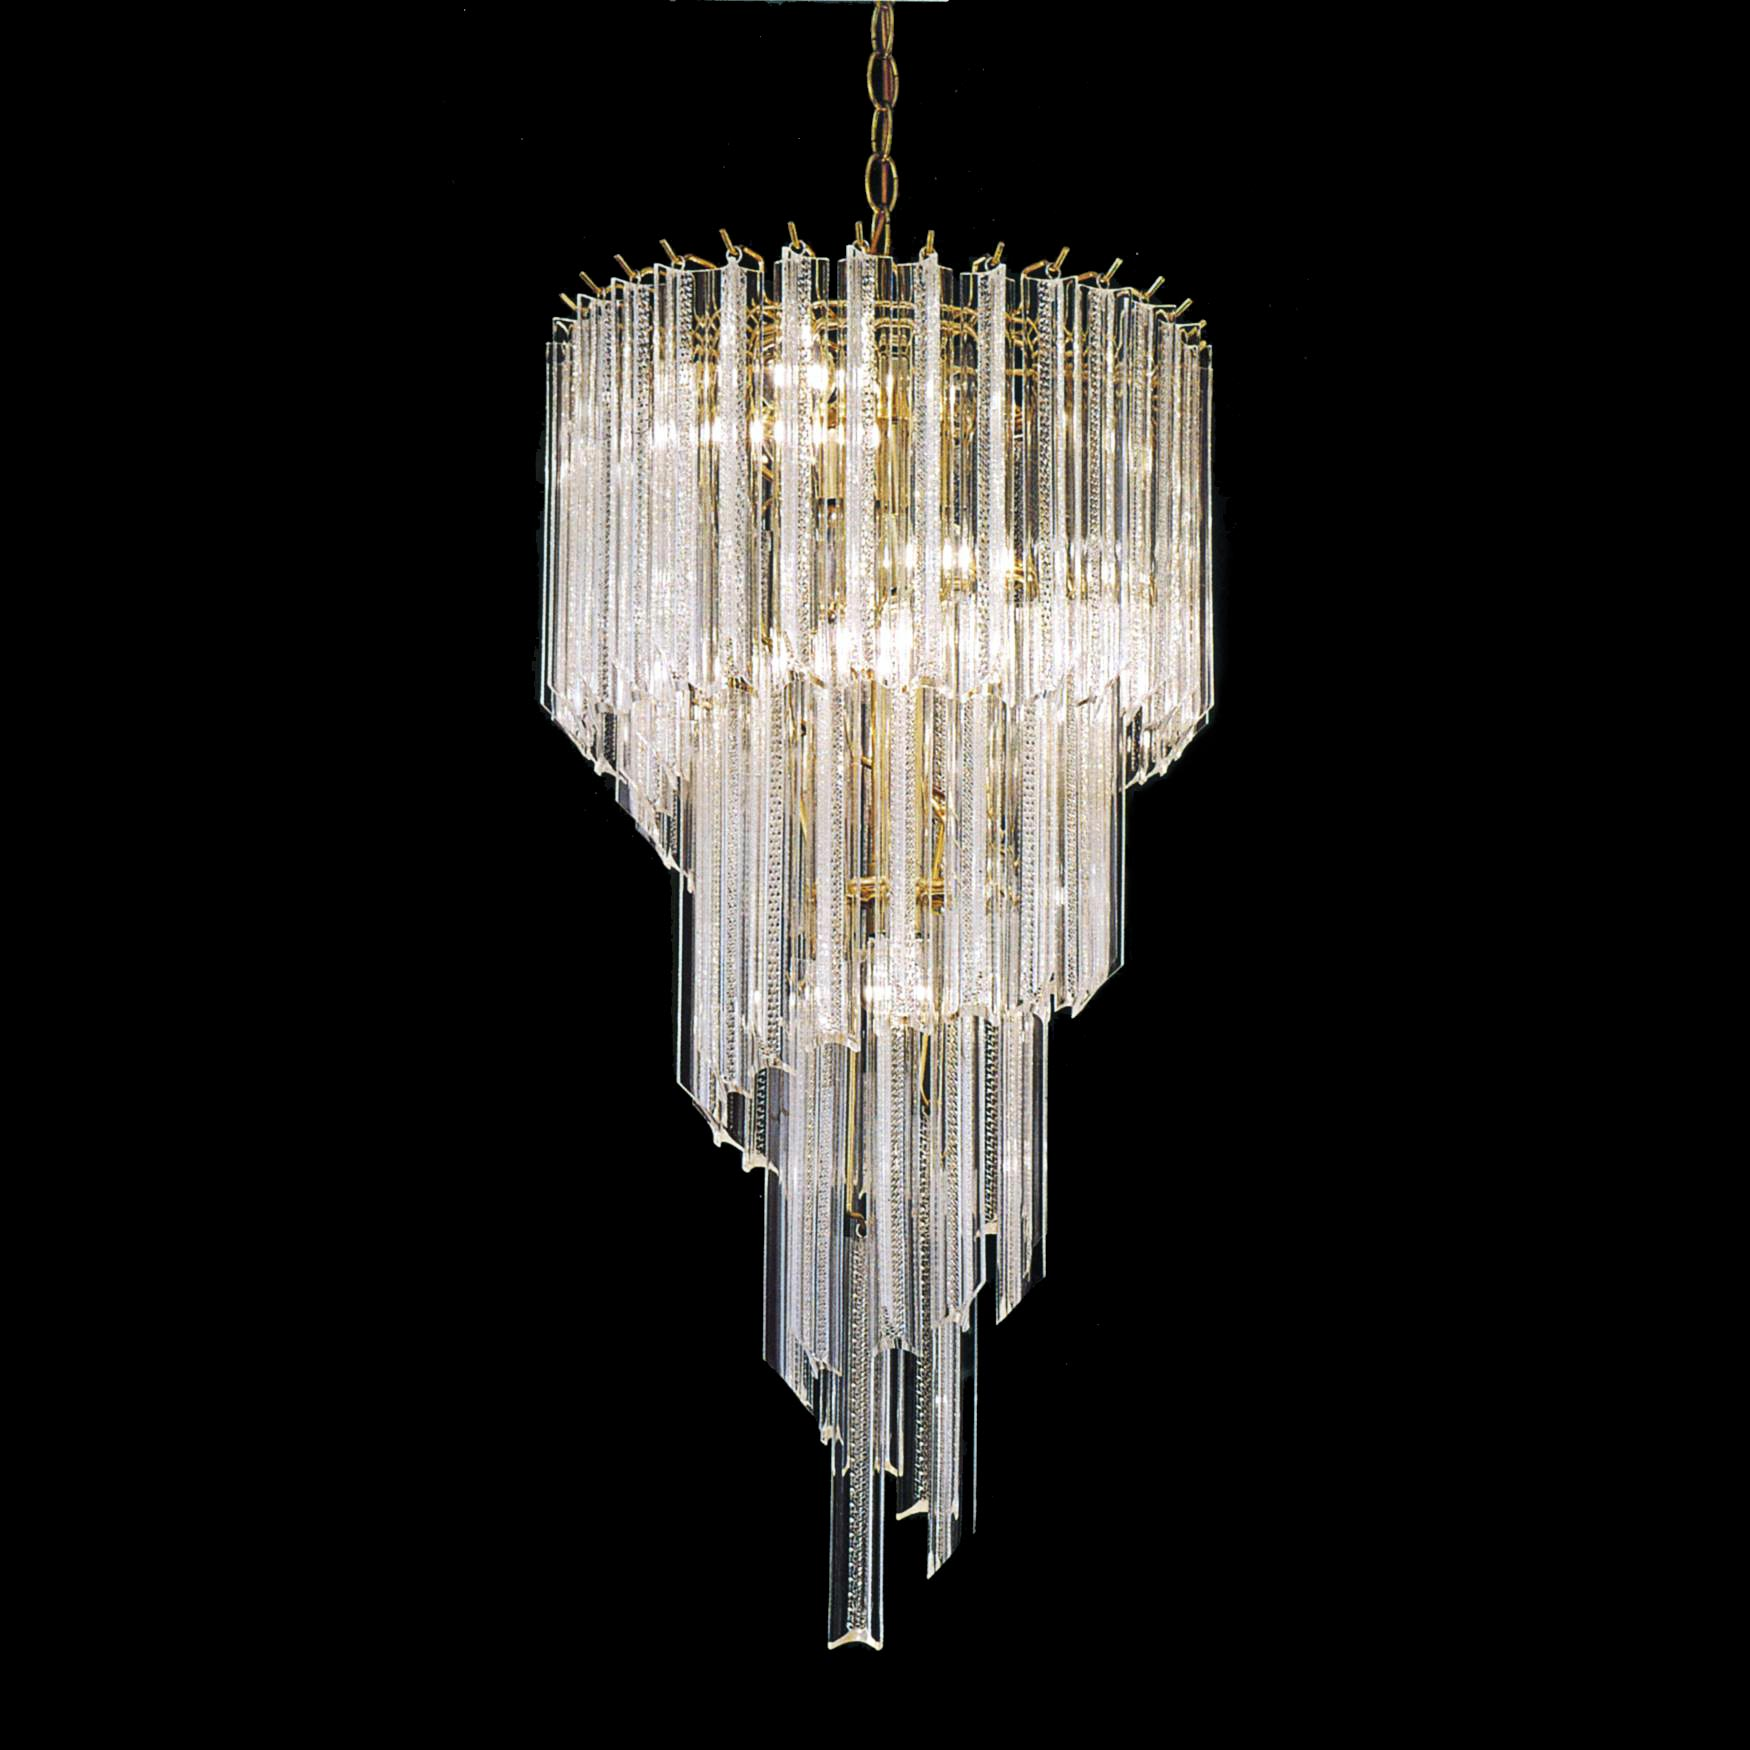 VONN VMC31730BL ModernContemporary 24 inch Led Chandelier